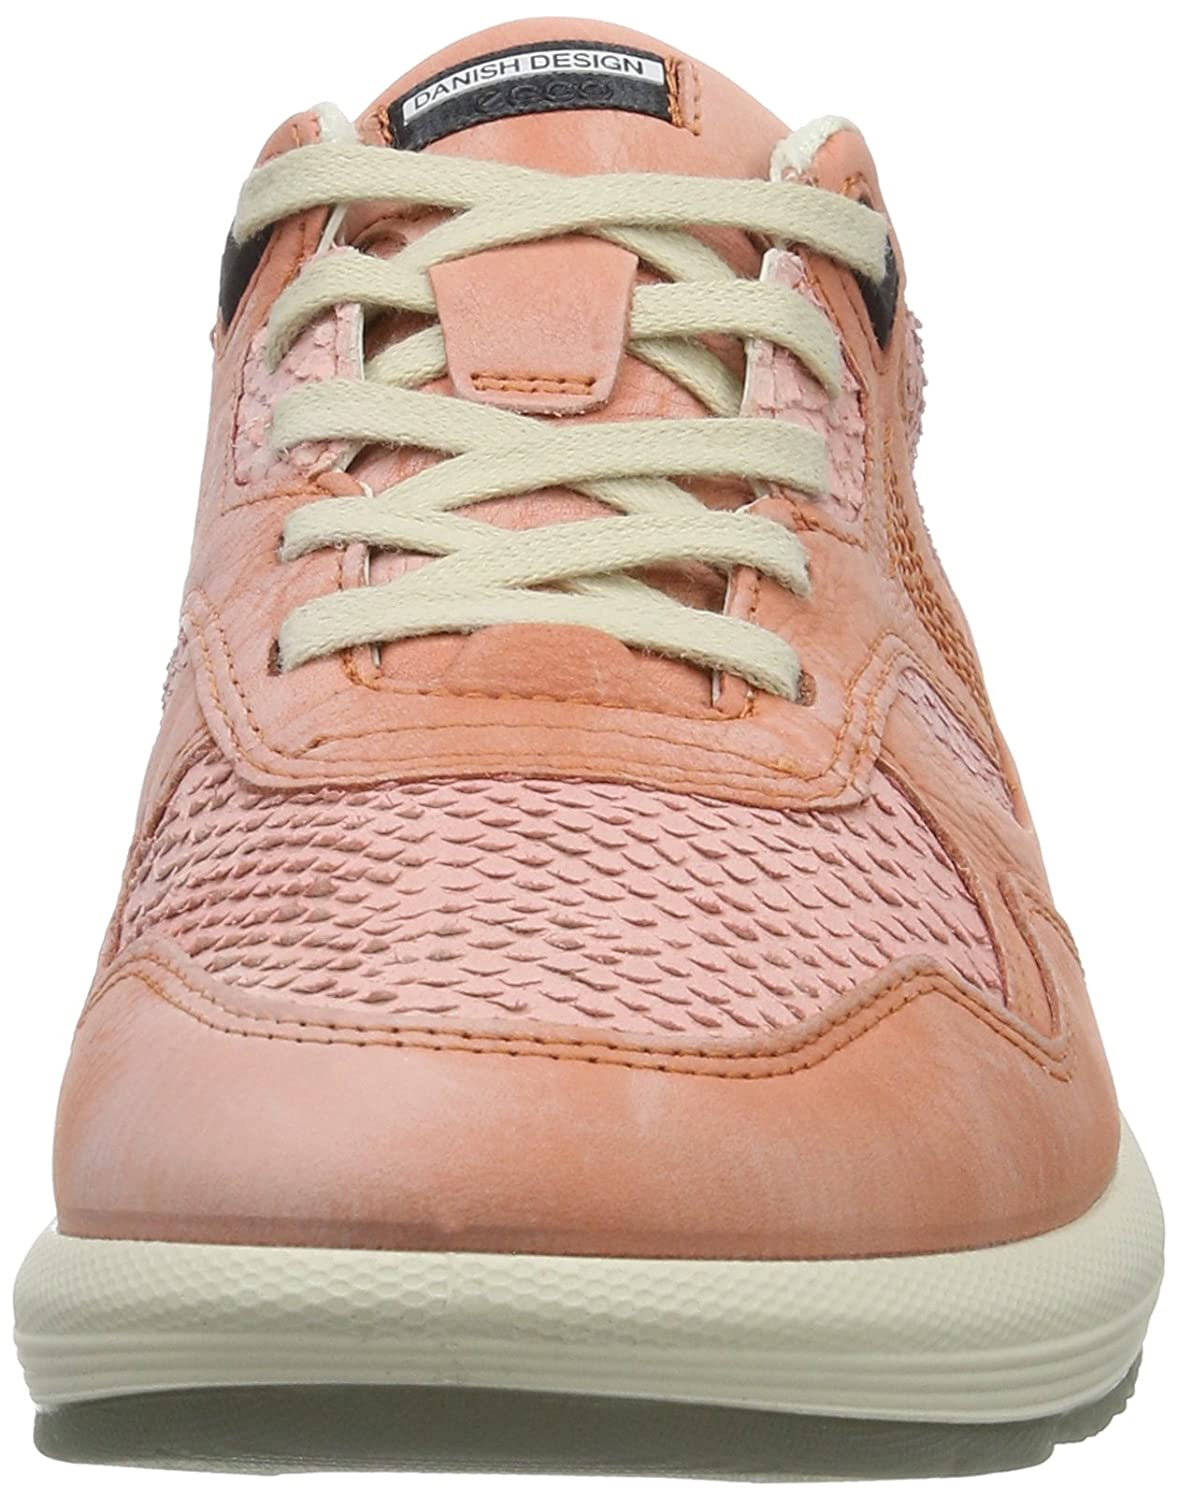 ECCO Women's B01I6F4OXE Women's Cs16 Fashion Sneaker B01I6F4OXE Women's 39 EU/8-8.5 M US|Coral Blush/Coral 4be32a